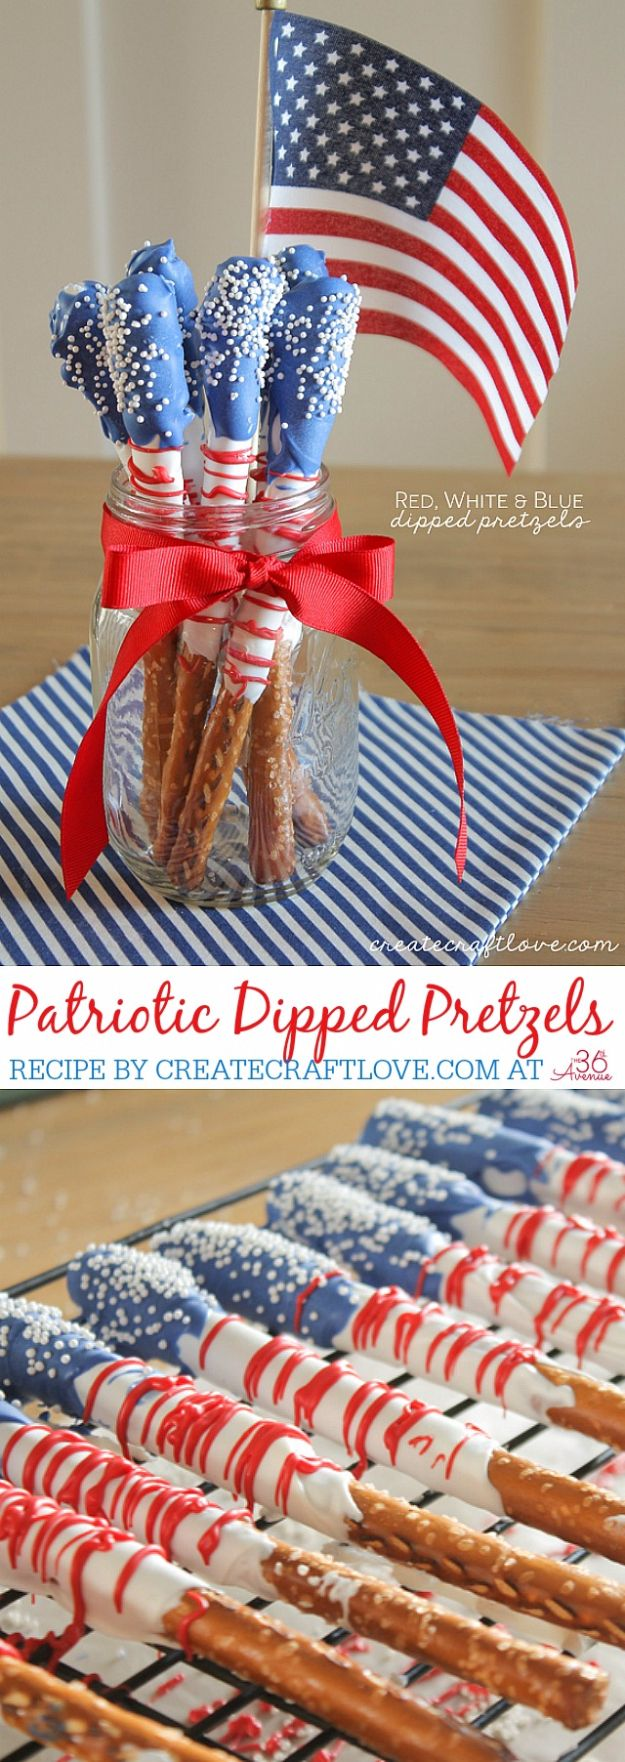 Best Fourth of July Food and Drink Ideas - Red White And Blue Dipped Pretzels - BBQ on the 4th with these Desserts, Recipes and Ideas for Healthy Appetizers, Party Trays, Easy Meals for a Crowd and Fun Drink Ideas http://diyjoy.com/diy-fourth-of-july-party-ideas